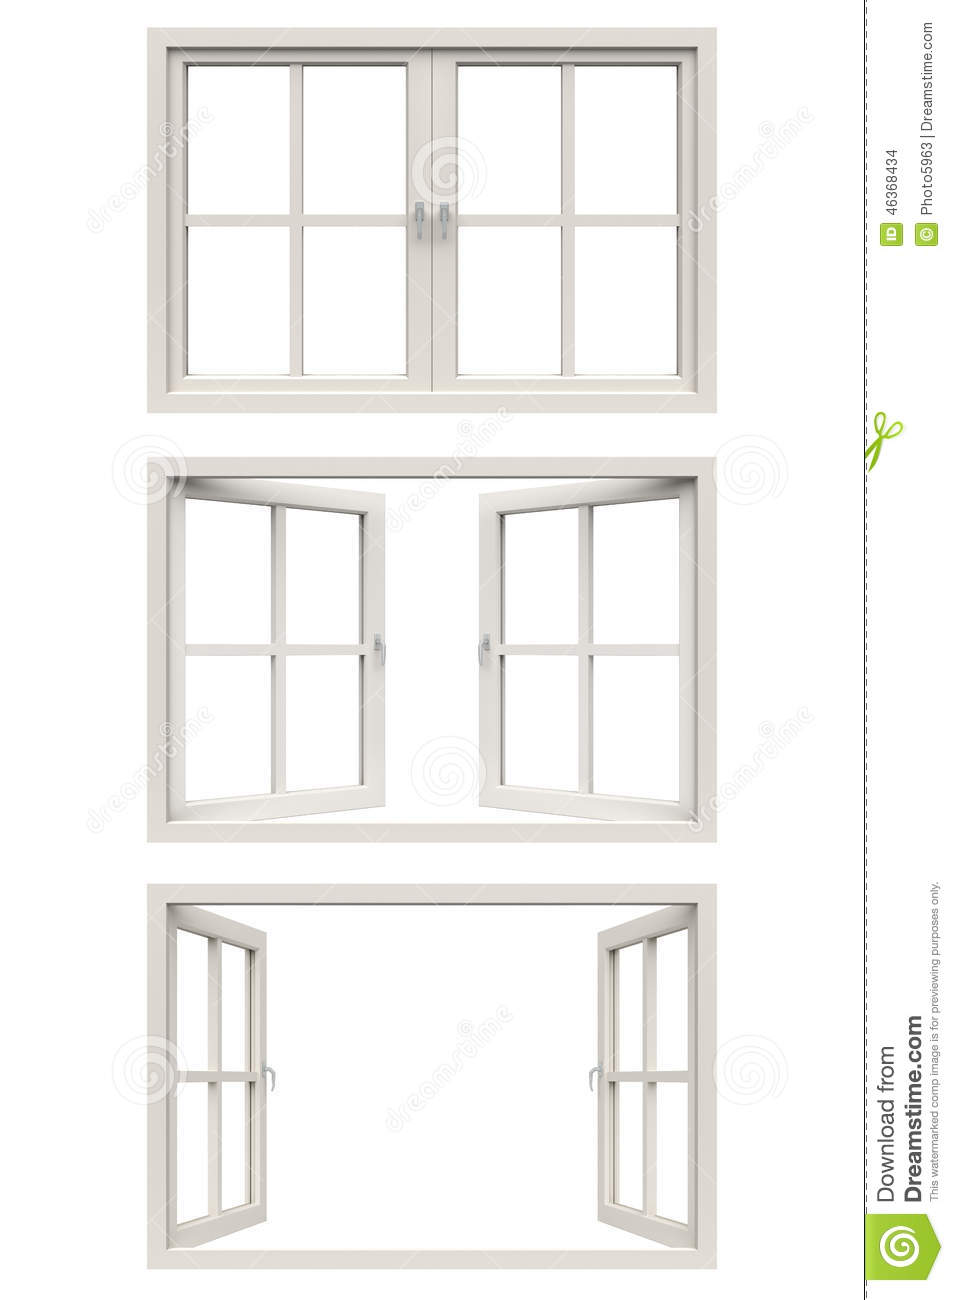 White window frame - Background Frame Isolated White Window